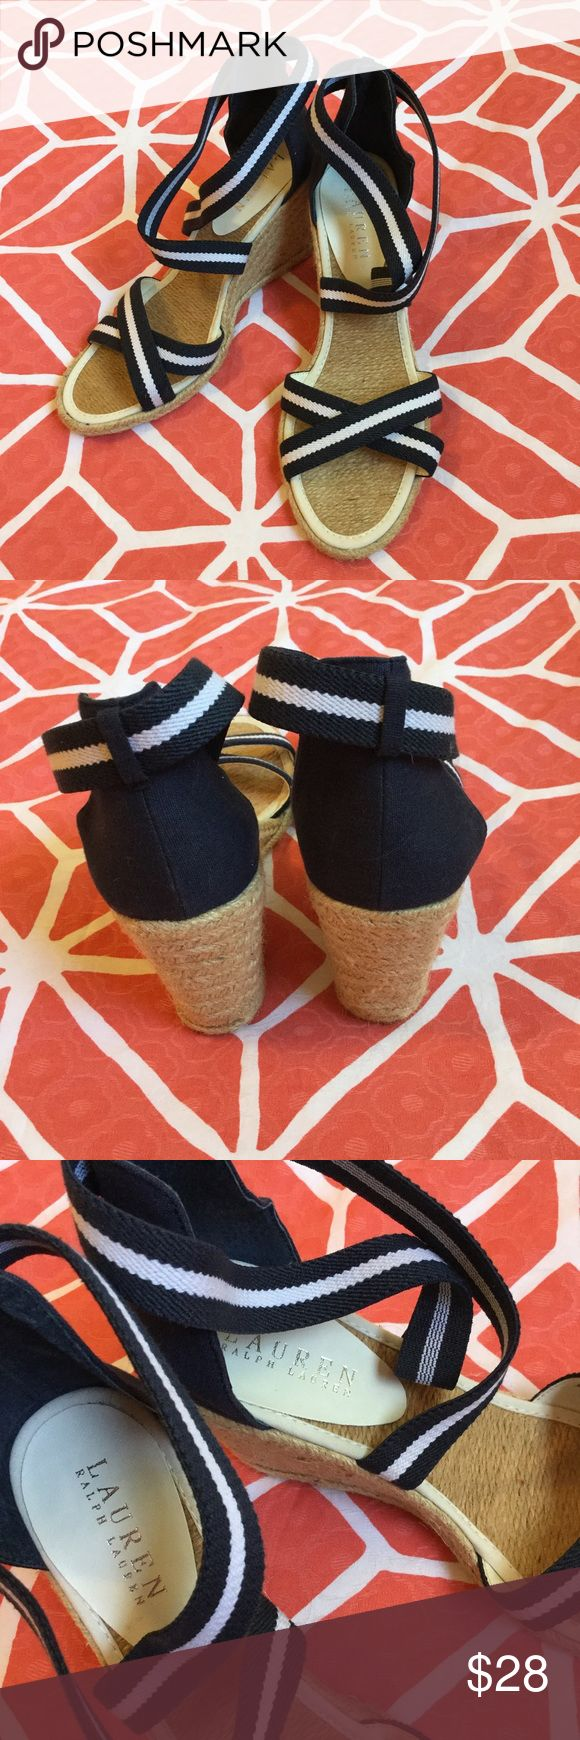 """LAUREN RALPH LAUREN Navy Wedge Sandals 7.5 B Snappy Nautical raffia wedge sandals in Navy canvas with striped stretchy elastic straps. Uppers, insoles and wedges are in A+ excellent condition. B width. Very light wear to soles. A summer """"must have!"""" Ralph Lauren Shoes Wedges"""